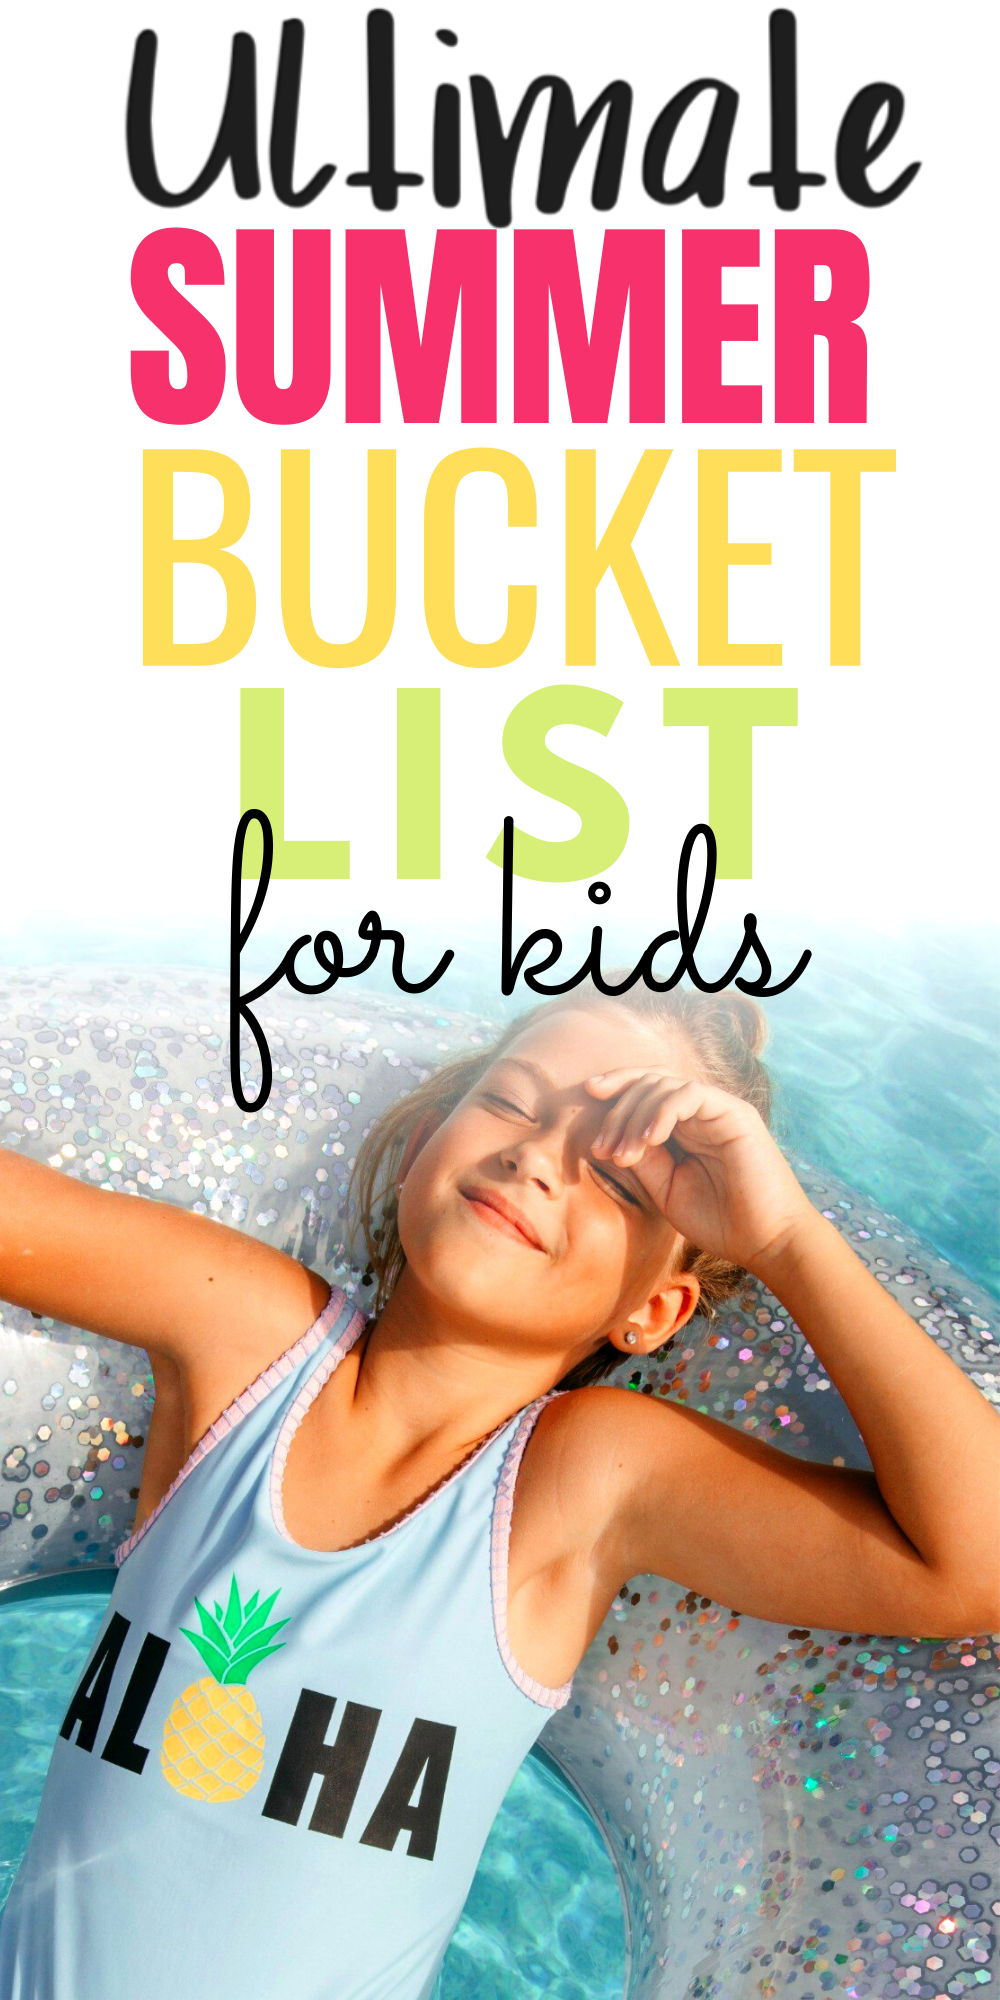 PRINTABLE SUMMER BUCKET LIST 2020 Cenzerely Yours in